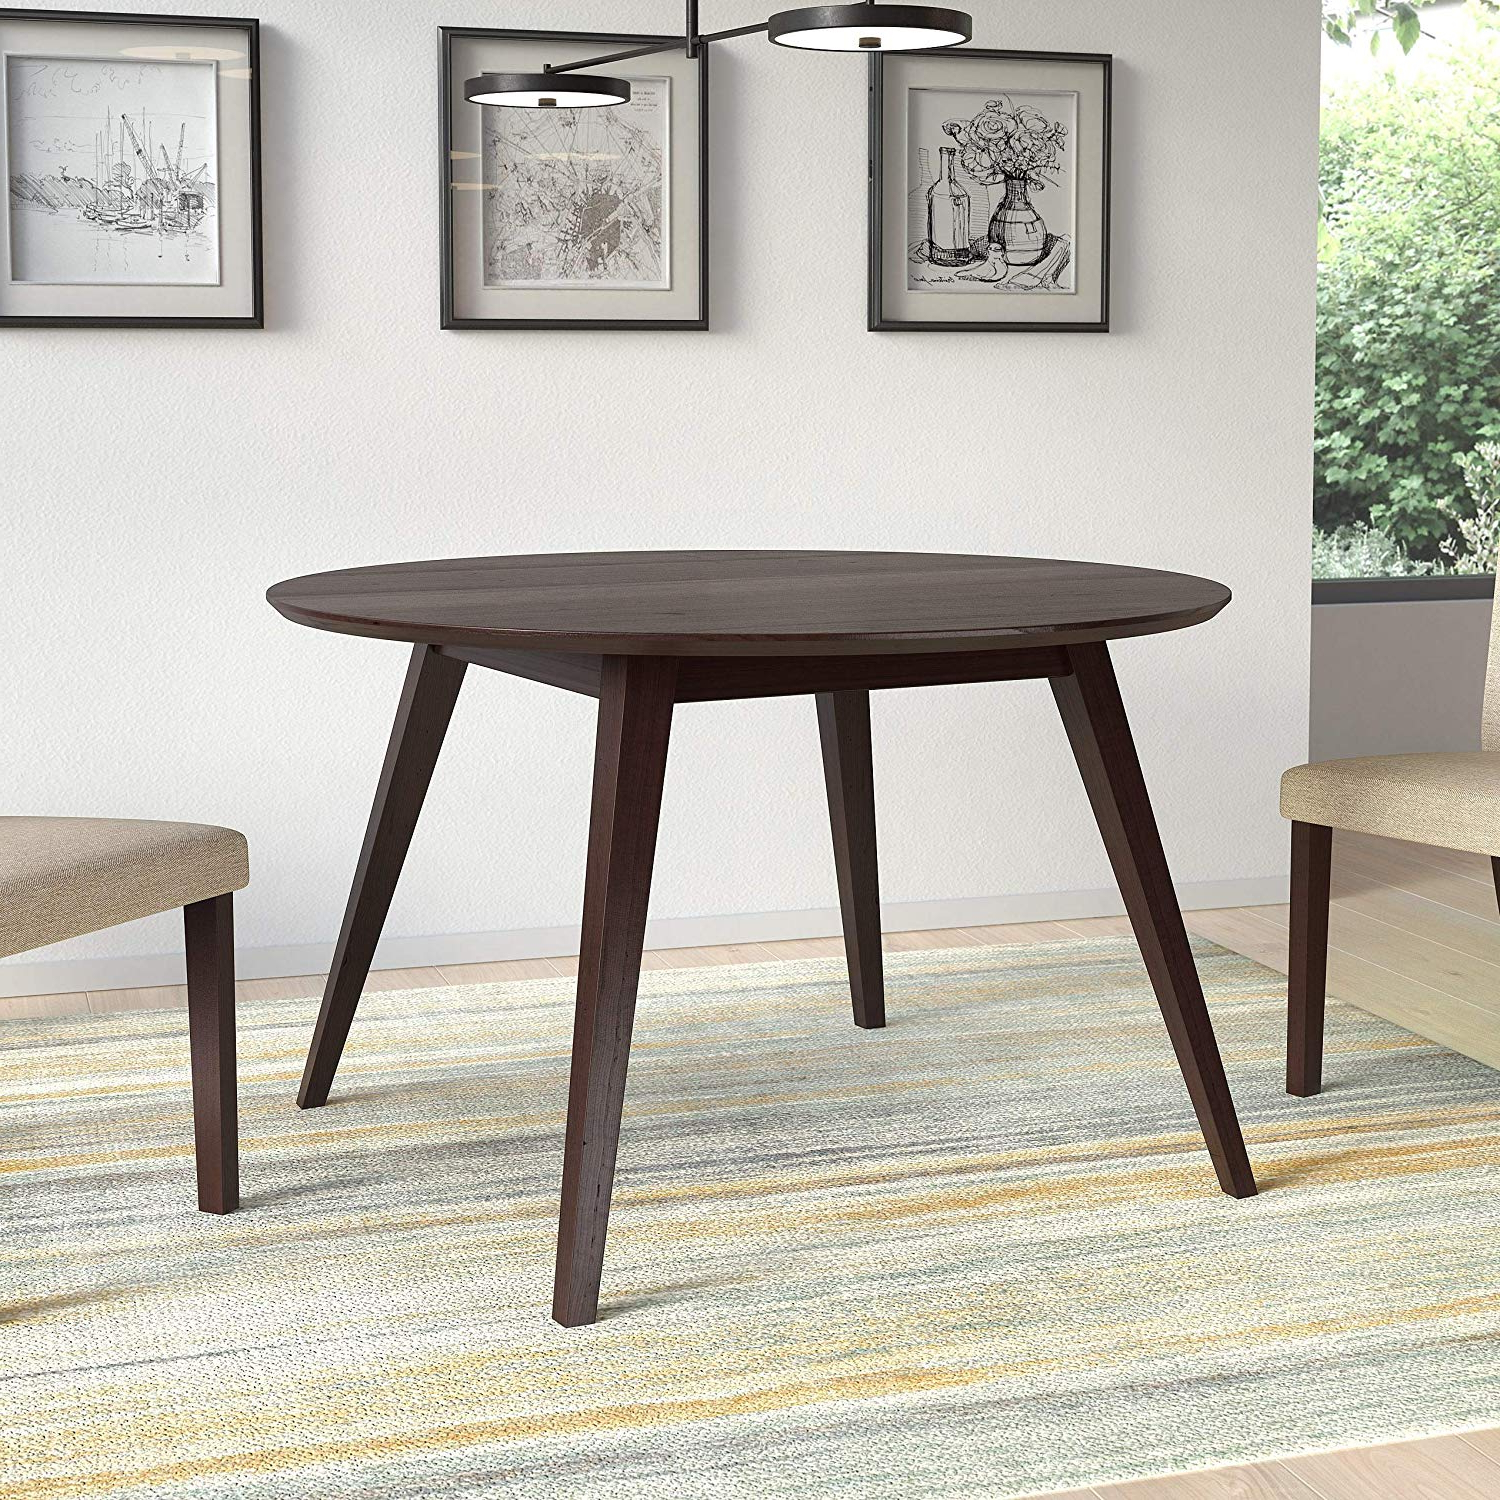 Atwood Transitional Square Dining Tables Pertaining To Favorite Amazon – Corliving Atwood Round Dining Table In (View 14 of 30)